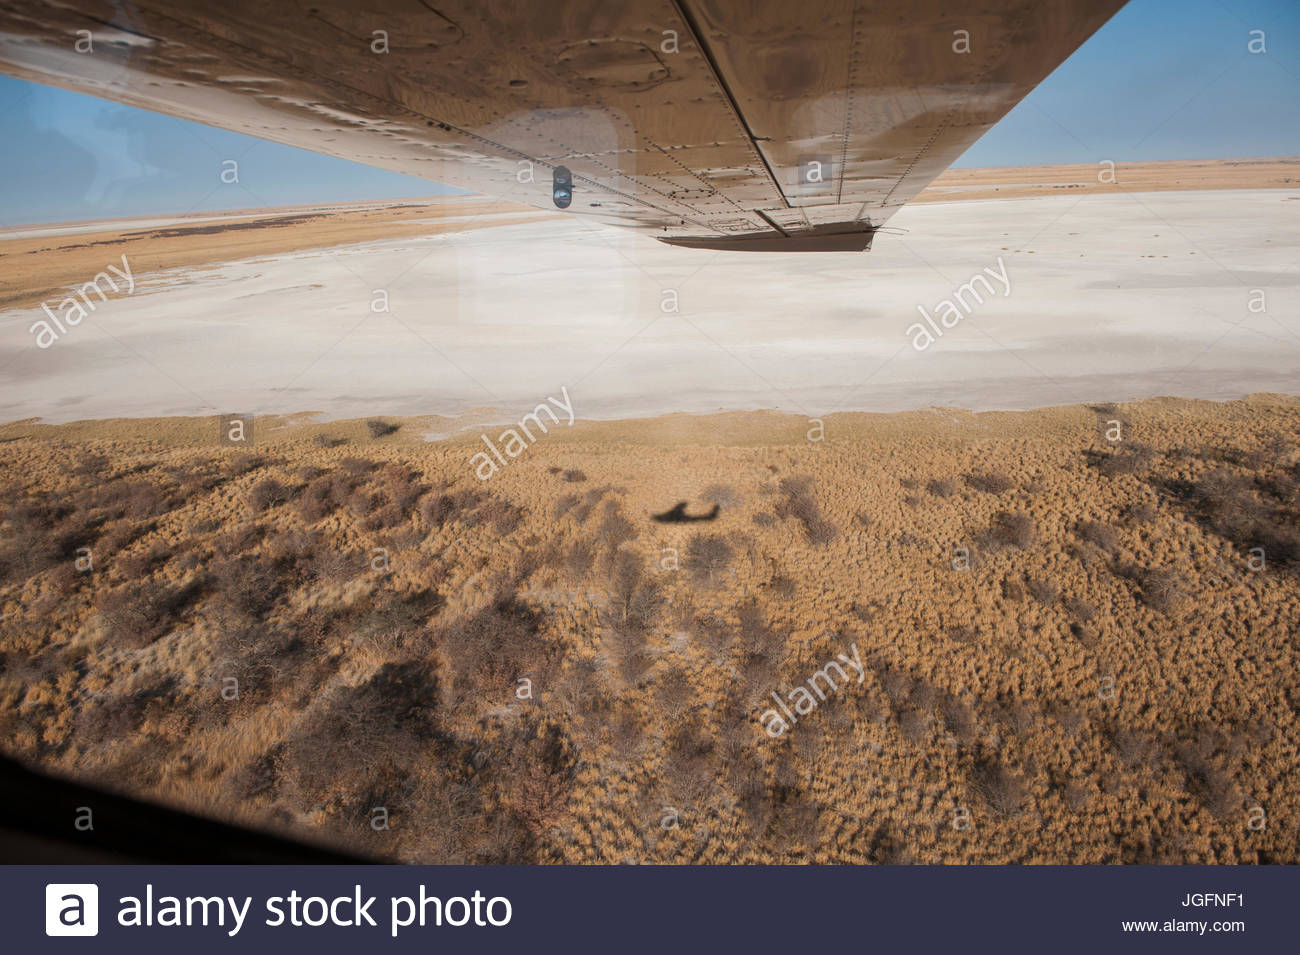 Vast and otherworldly, the salt pans of Botswana's Kalahari Desert dwarf a bush plane's shadow. - Stock Image